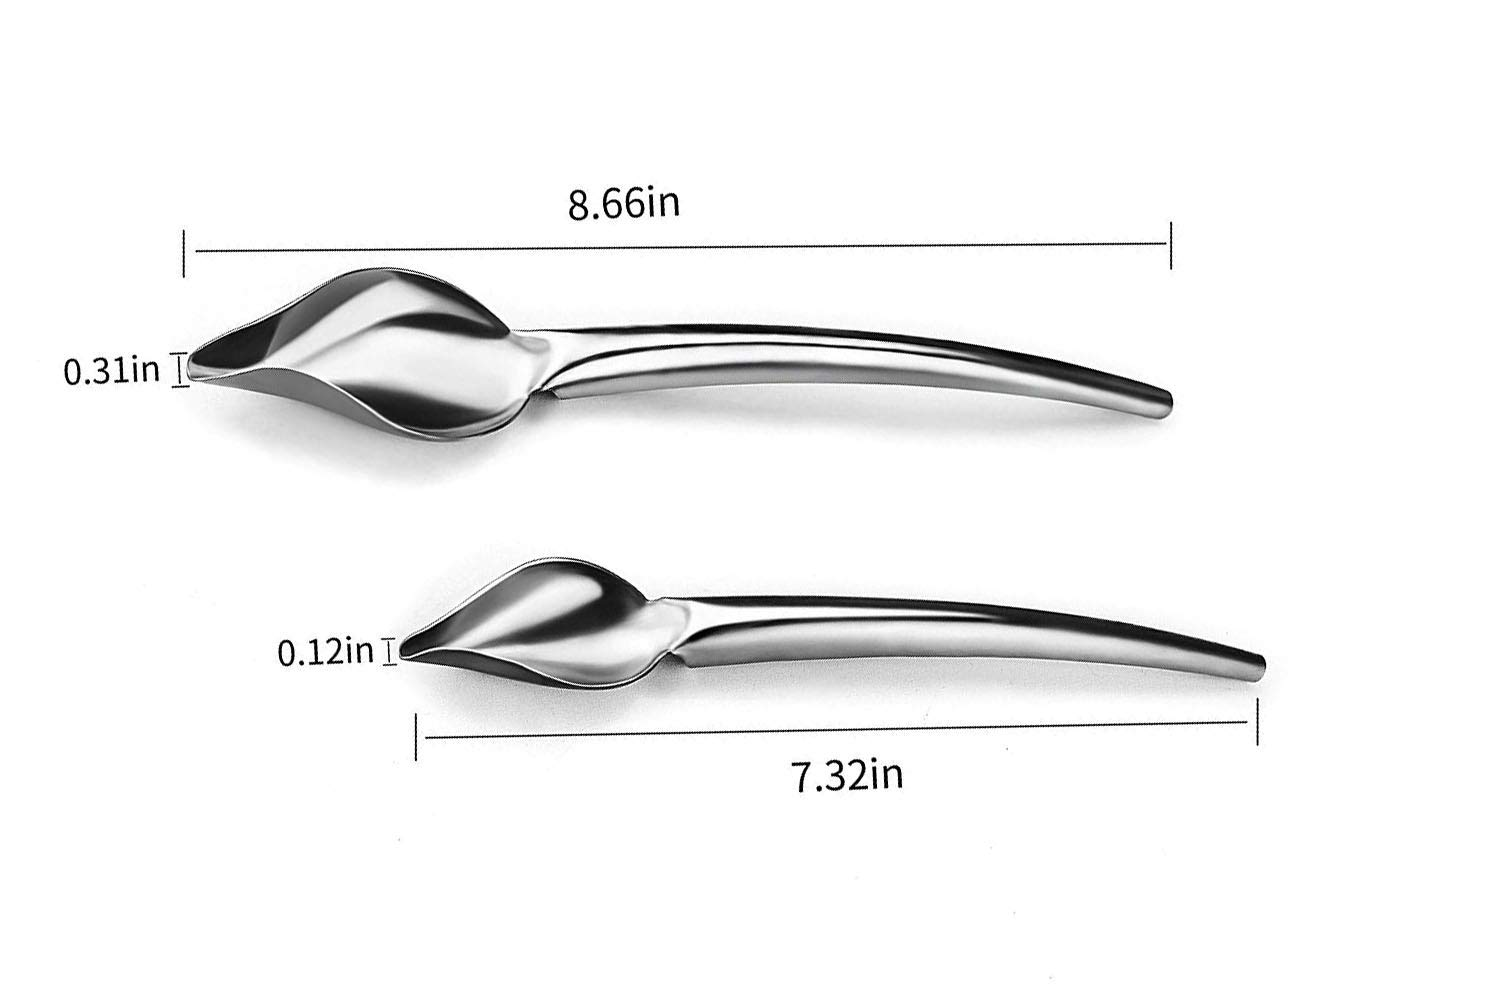 Favson Deco Spoon Multi-use Precision Chef Culinary Drawing Spoons for Decorating Plates Set of 2